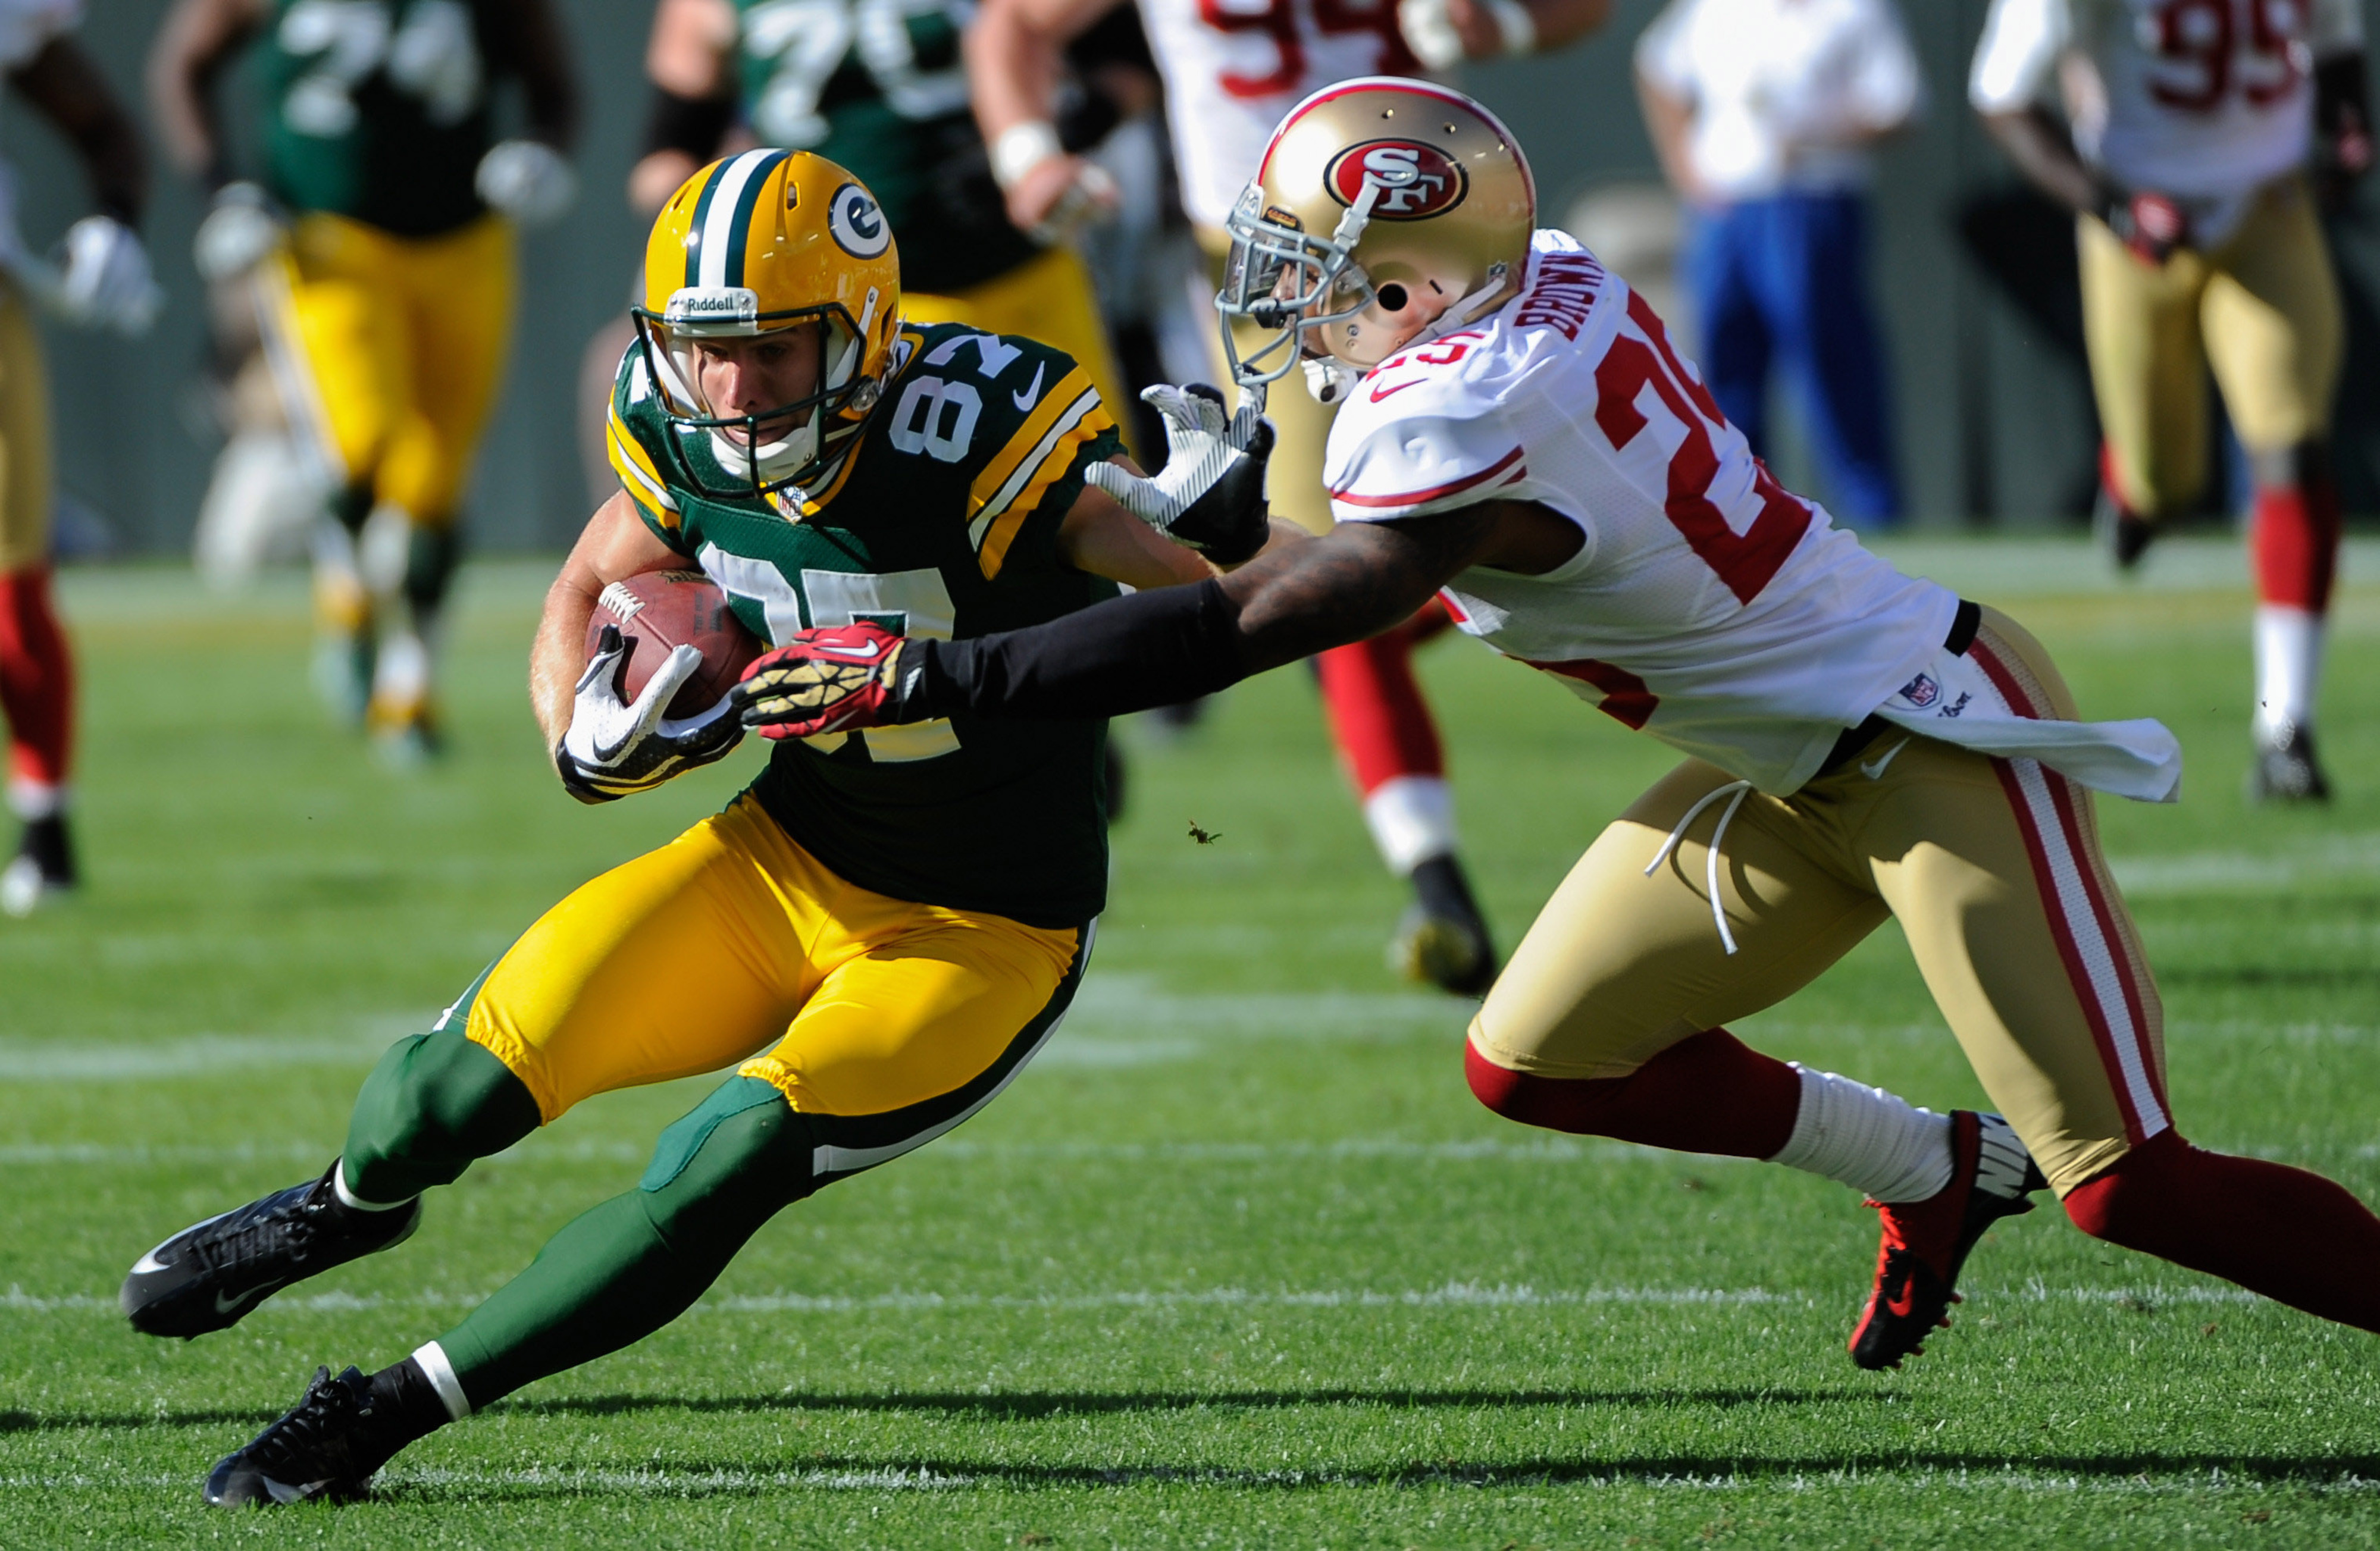 Sept 9, 2012; Green Bay, WI, USA;   Green Bay Packers wide receiver Jordy Nelson (87) tries to break a tackle by San Francisco 49ers cornerback Tarell Brown (25) at Lambeau Field.  Mandatory Credit: Benny Sieu-US PRESSWIRE